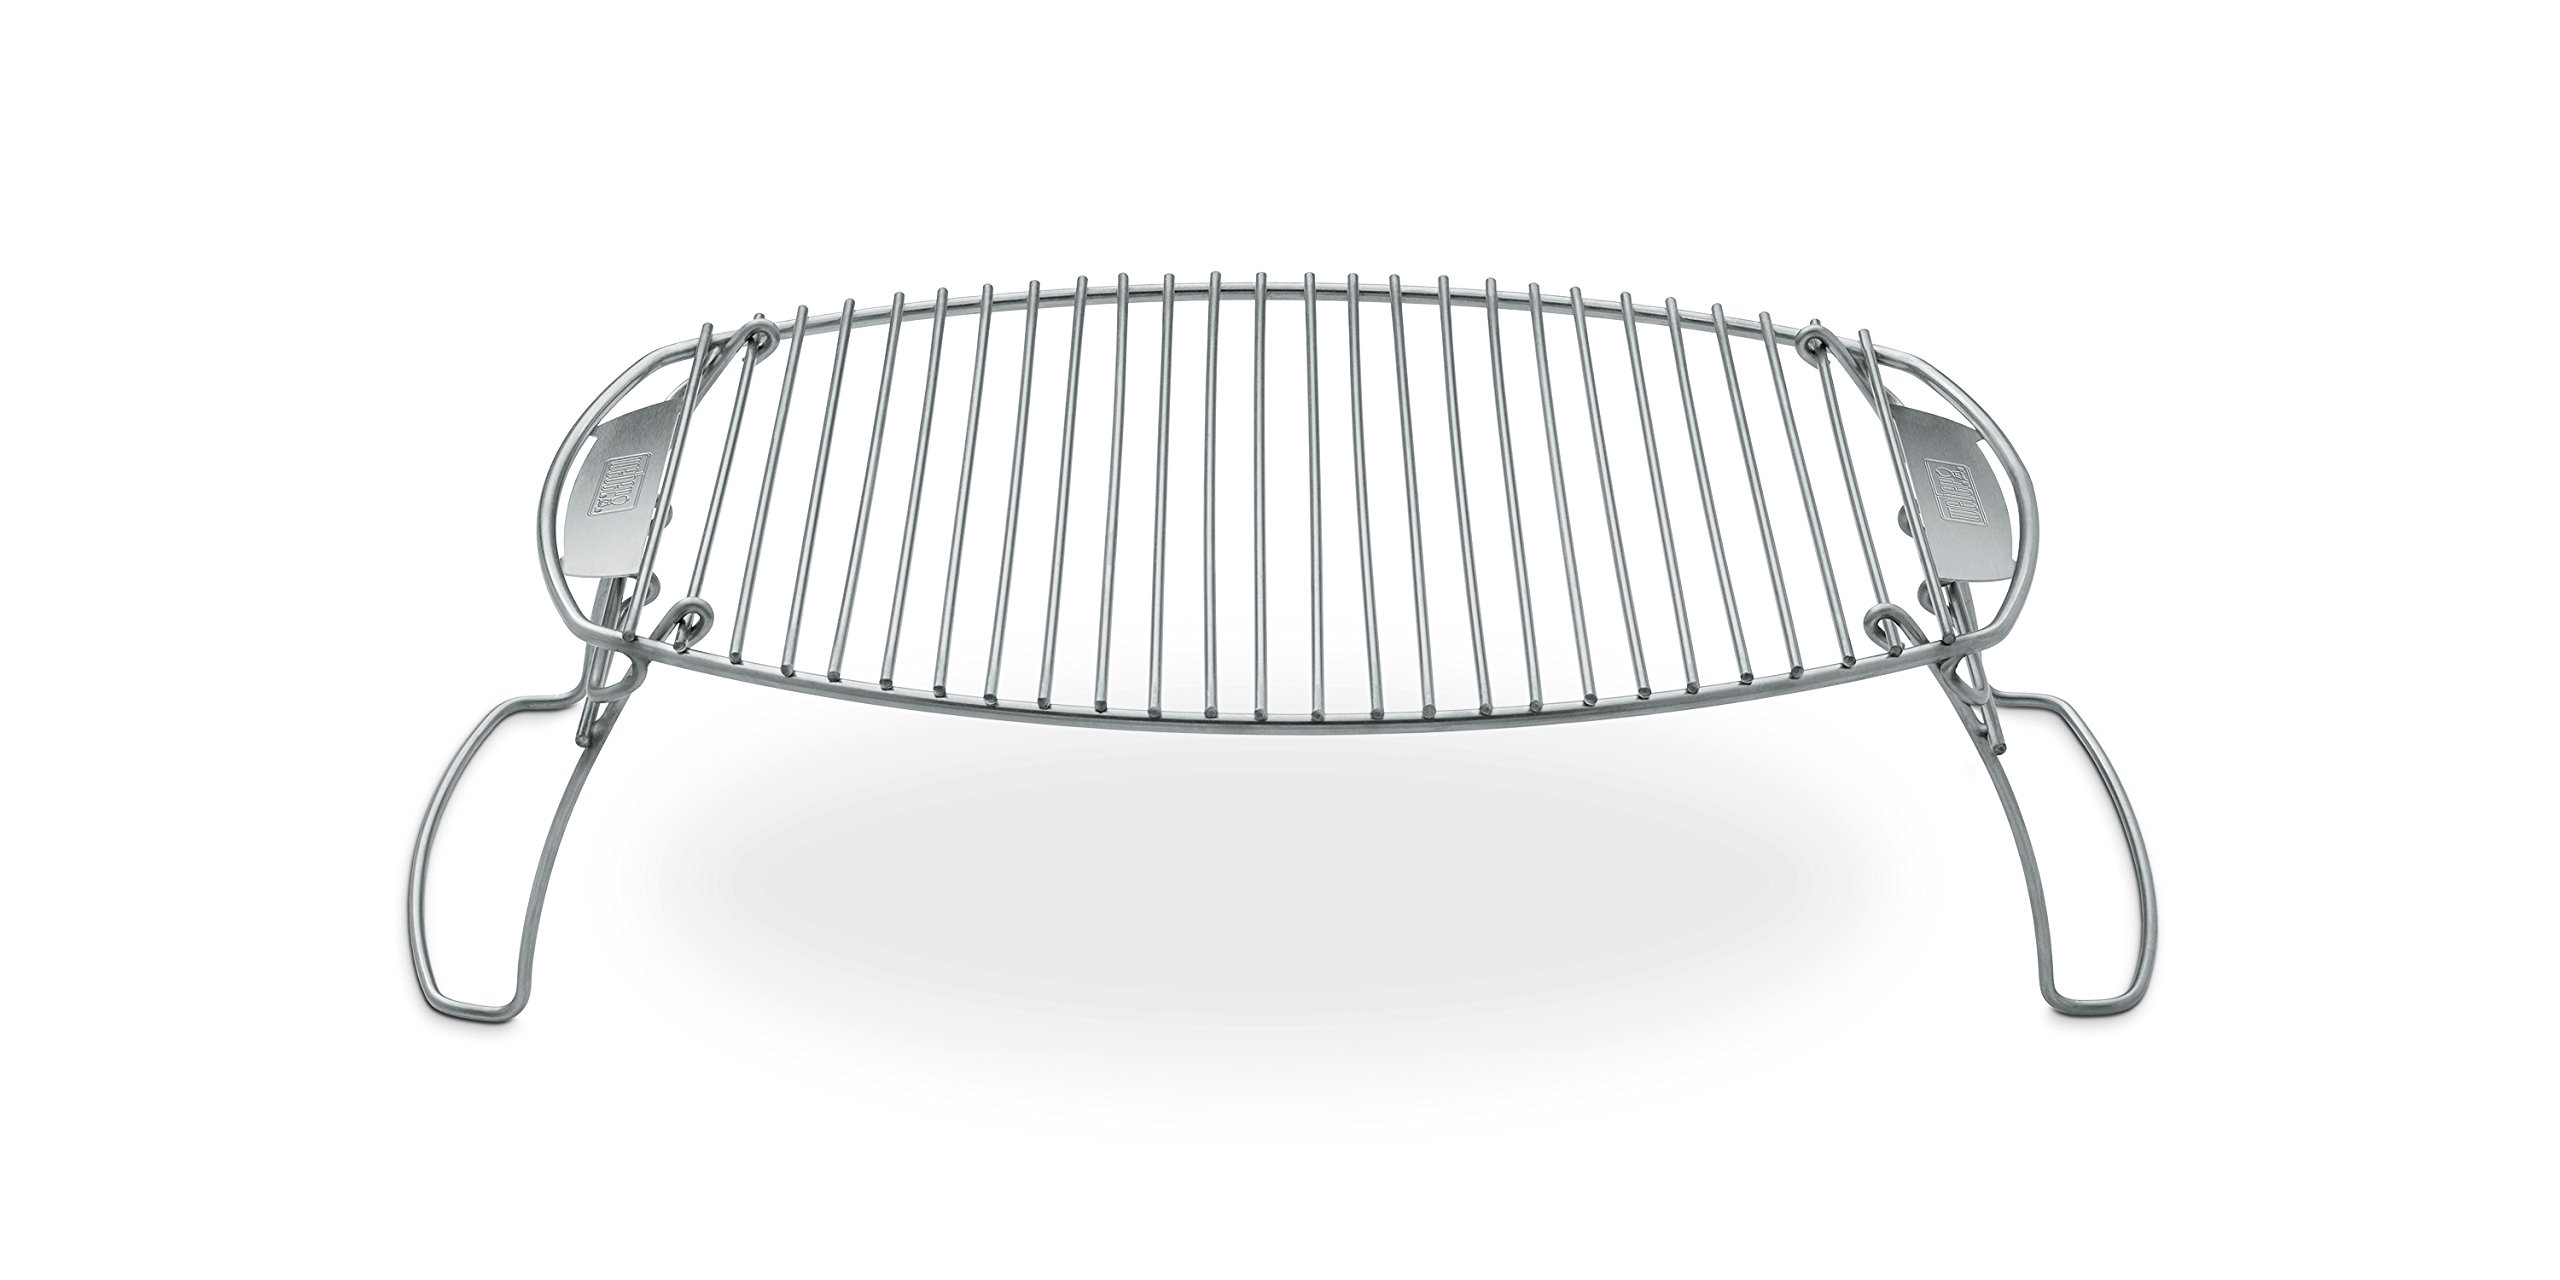 Weber Stephen Products 7647 22'' x 12'' Expansion Grilling Rack, Multicolor by Weber